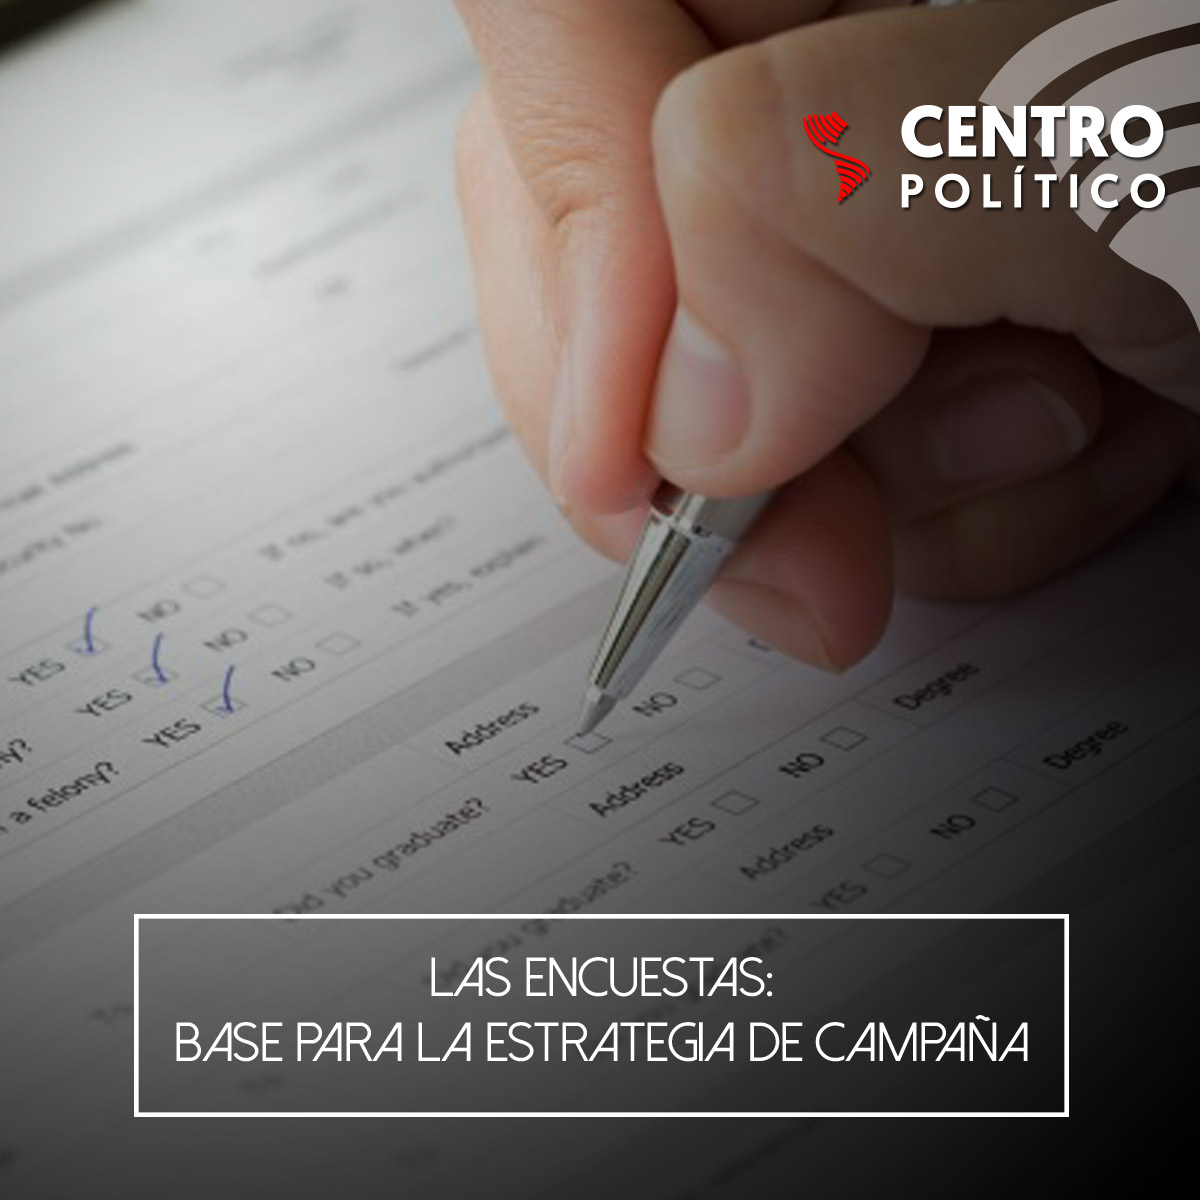 Curso de Marketing Político